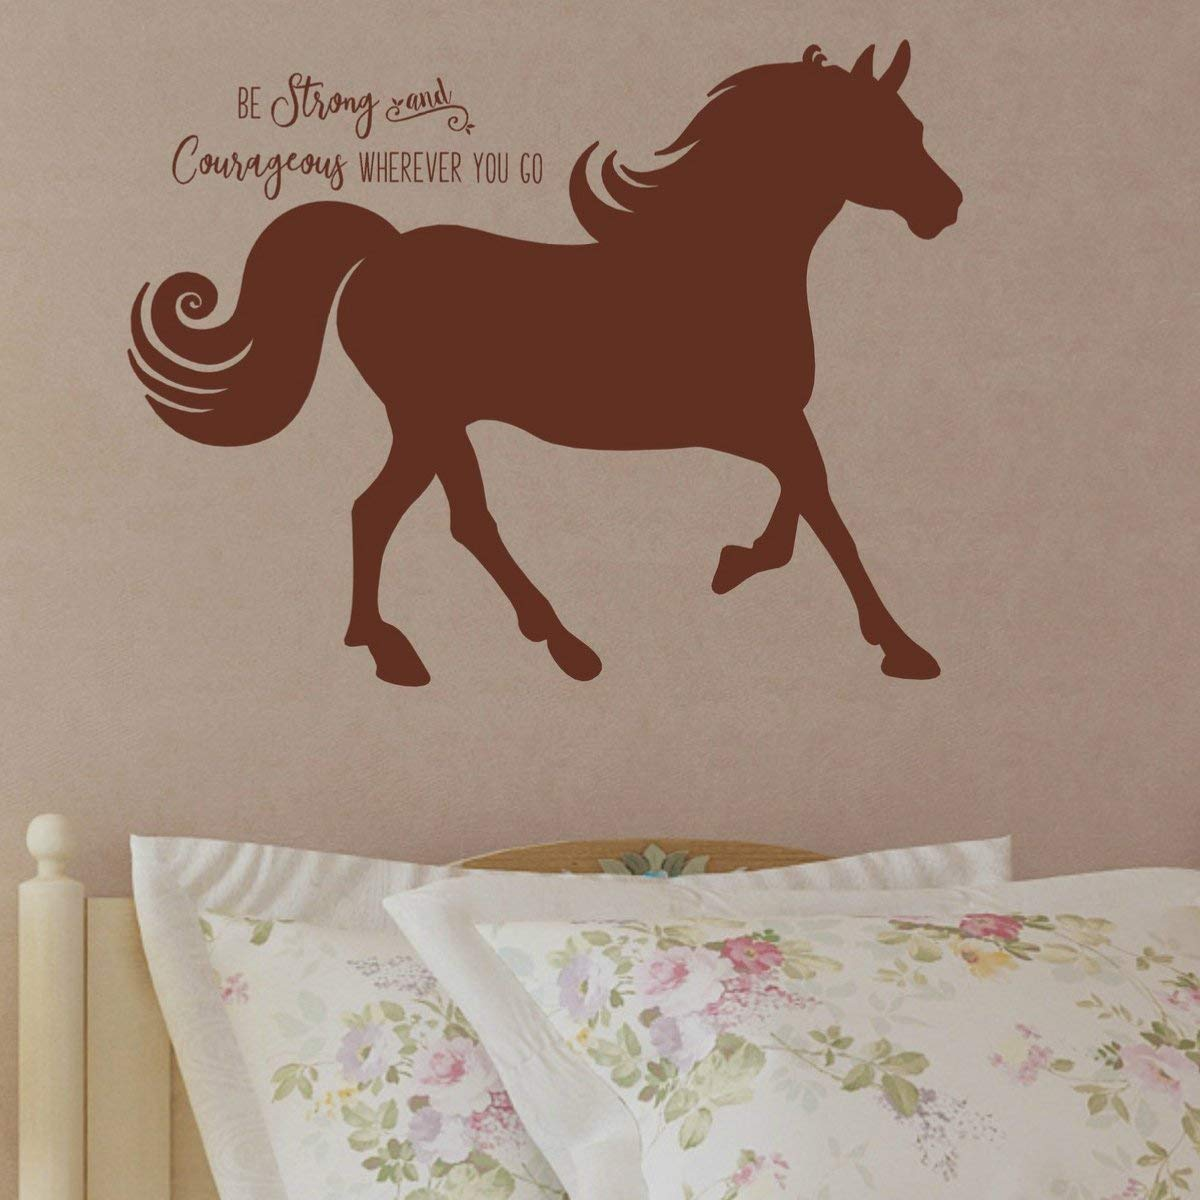 Amazon Com Horse Quote Vinyl Wall Decal Country Theme Decorations Horse Decor For Girls Room 36 X27 Brown Handmade